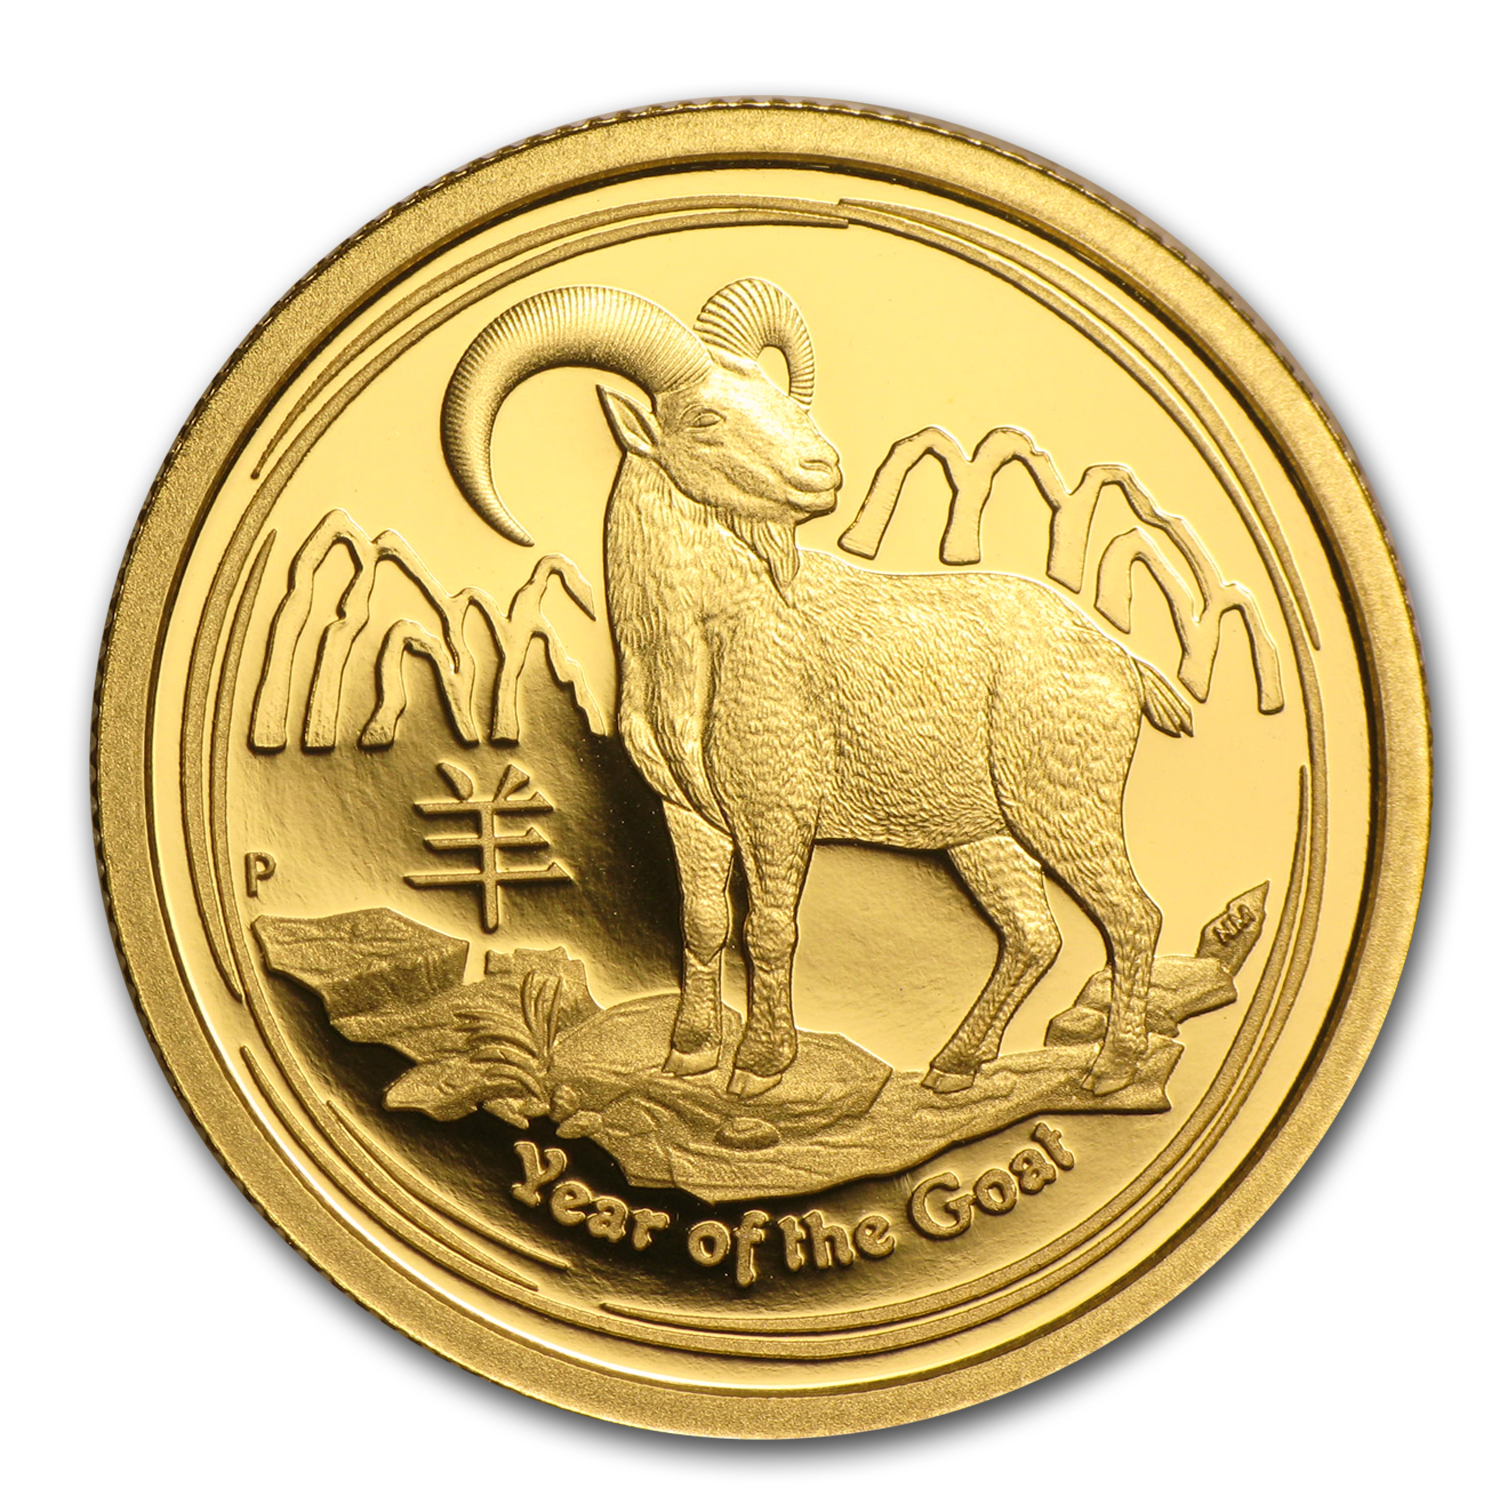 2015 Australia 1/4 oz Gold Lunar Goat Proof (w/box and COA)